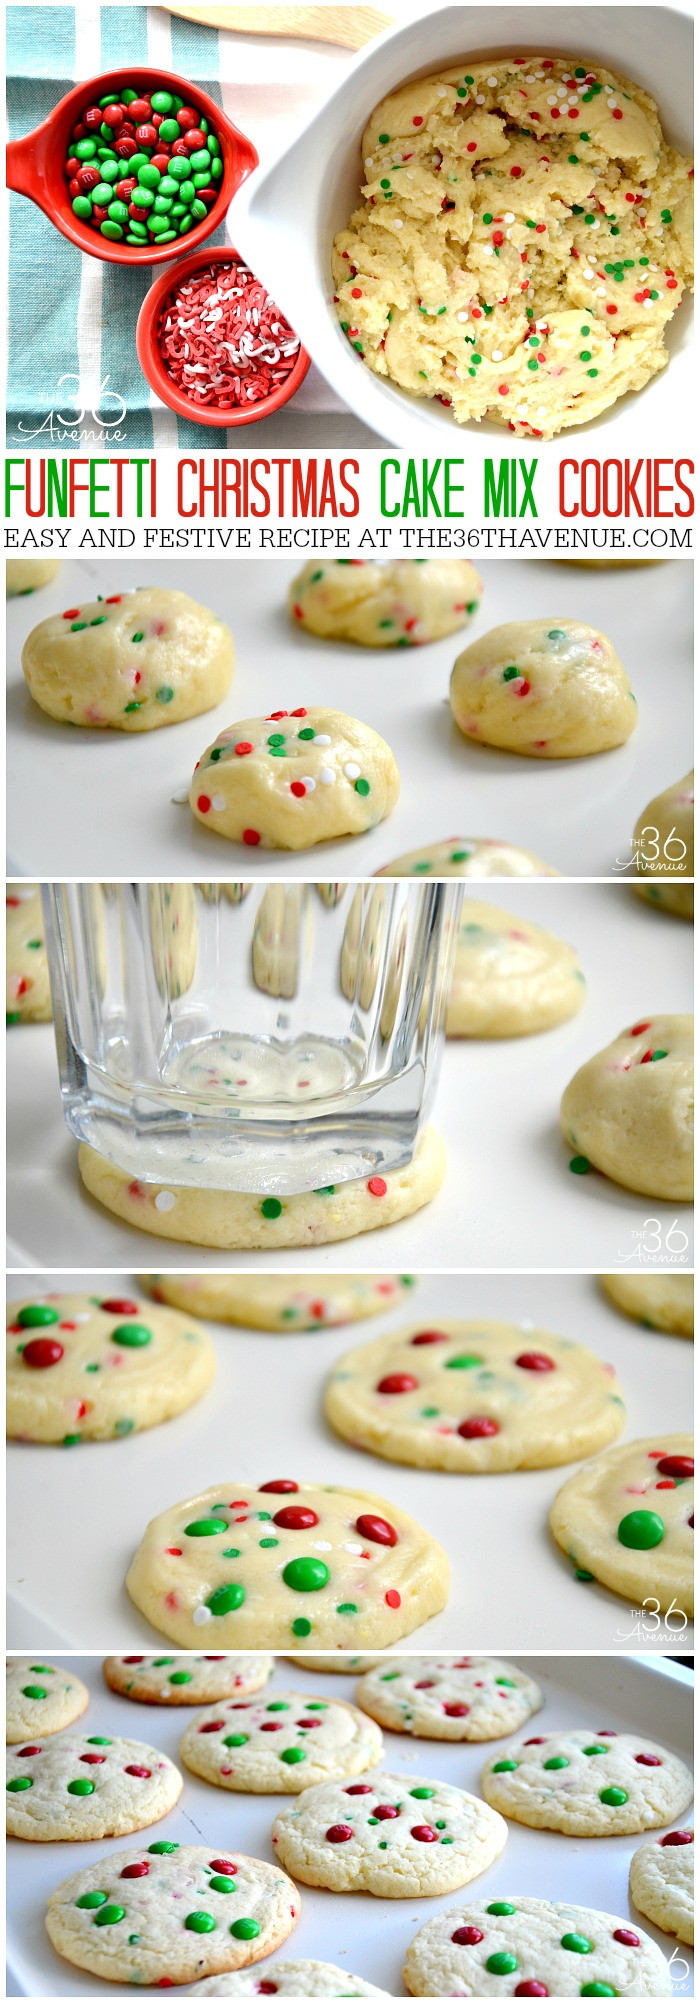 Christmas Baking Receipies  Christmas Cookies Easy Christmas Recipes The 36th AVENUE